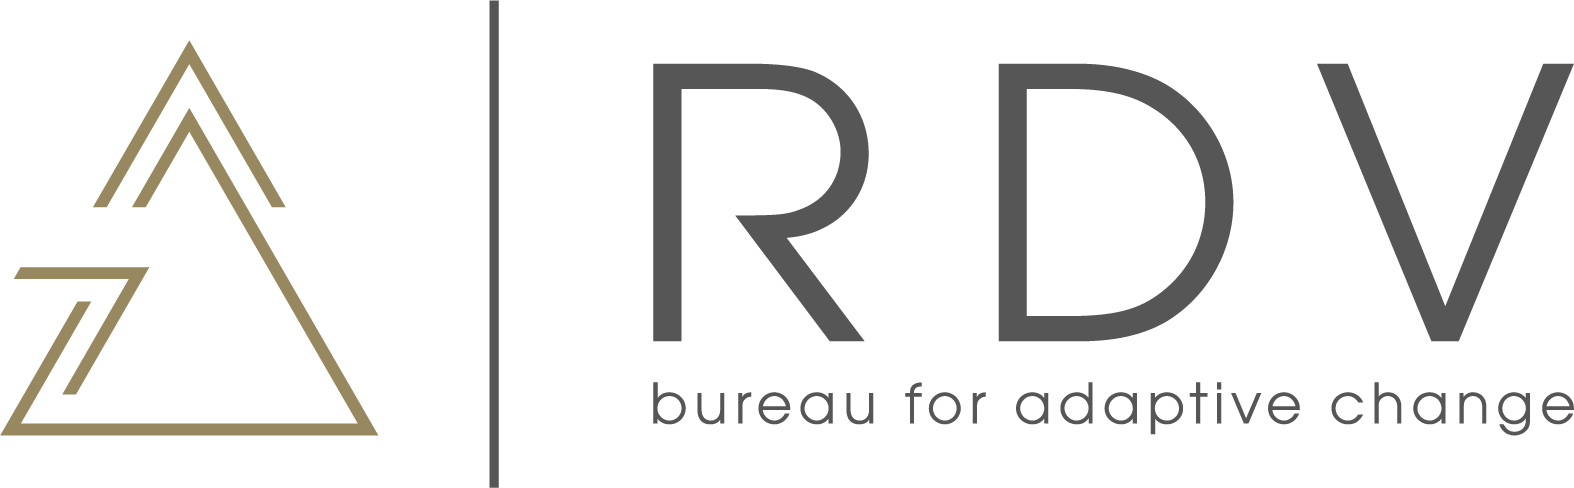 RDV bureau for adaptive change logo